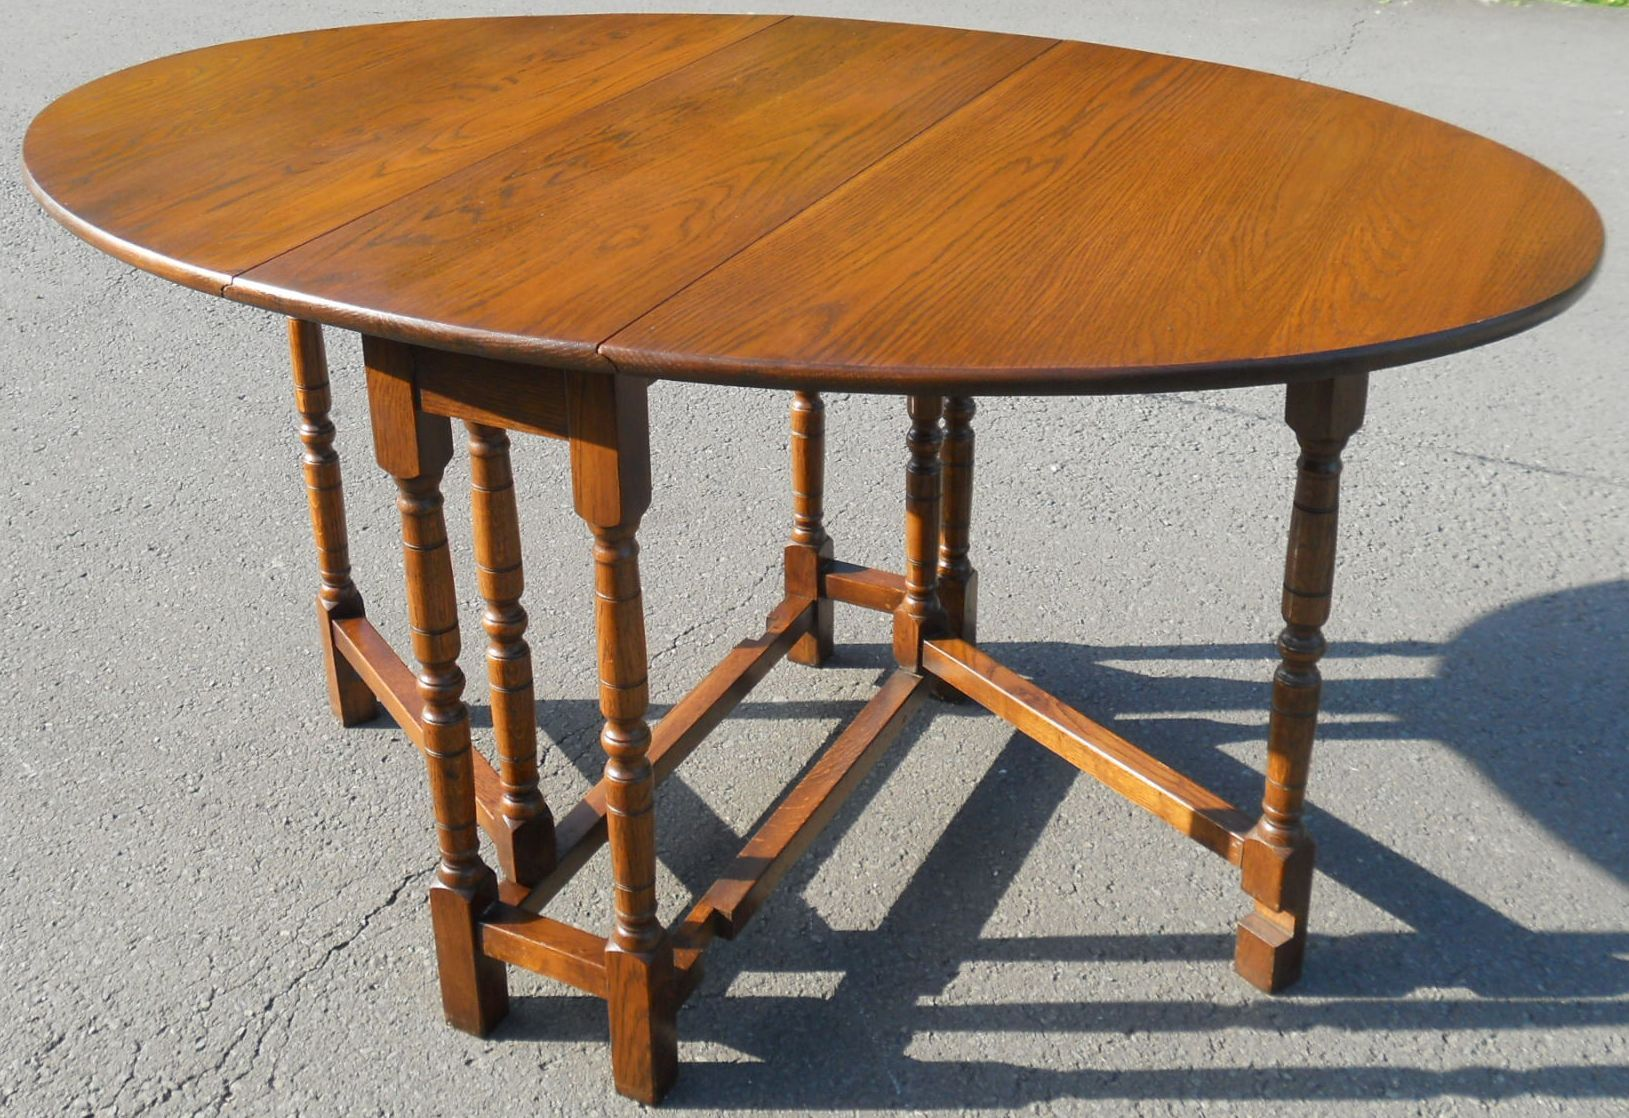 SOLD Oak Oval Gateleg Dining Table to Seat Six : sold oak oval gateleg dining table to seat six 4596 p from www.harrisonantiquefurniture.co.uk size 1629 x 1118 jpeg 327kB